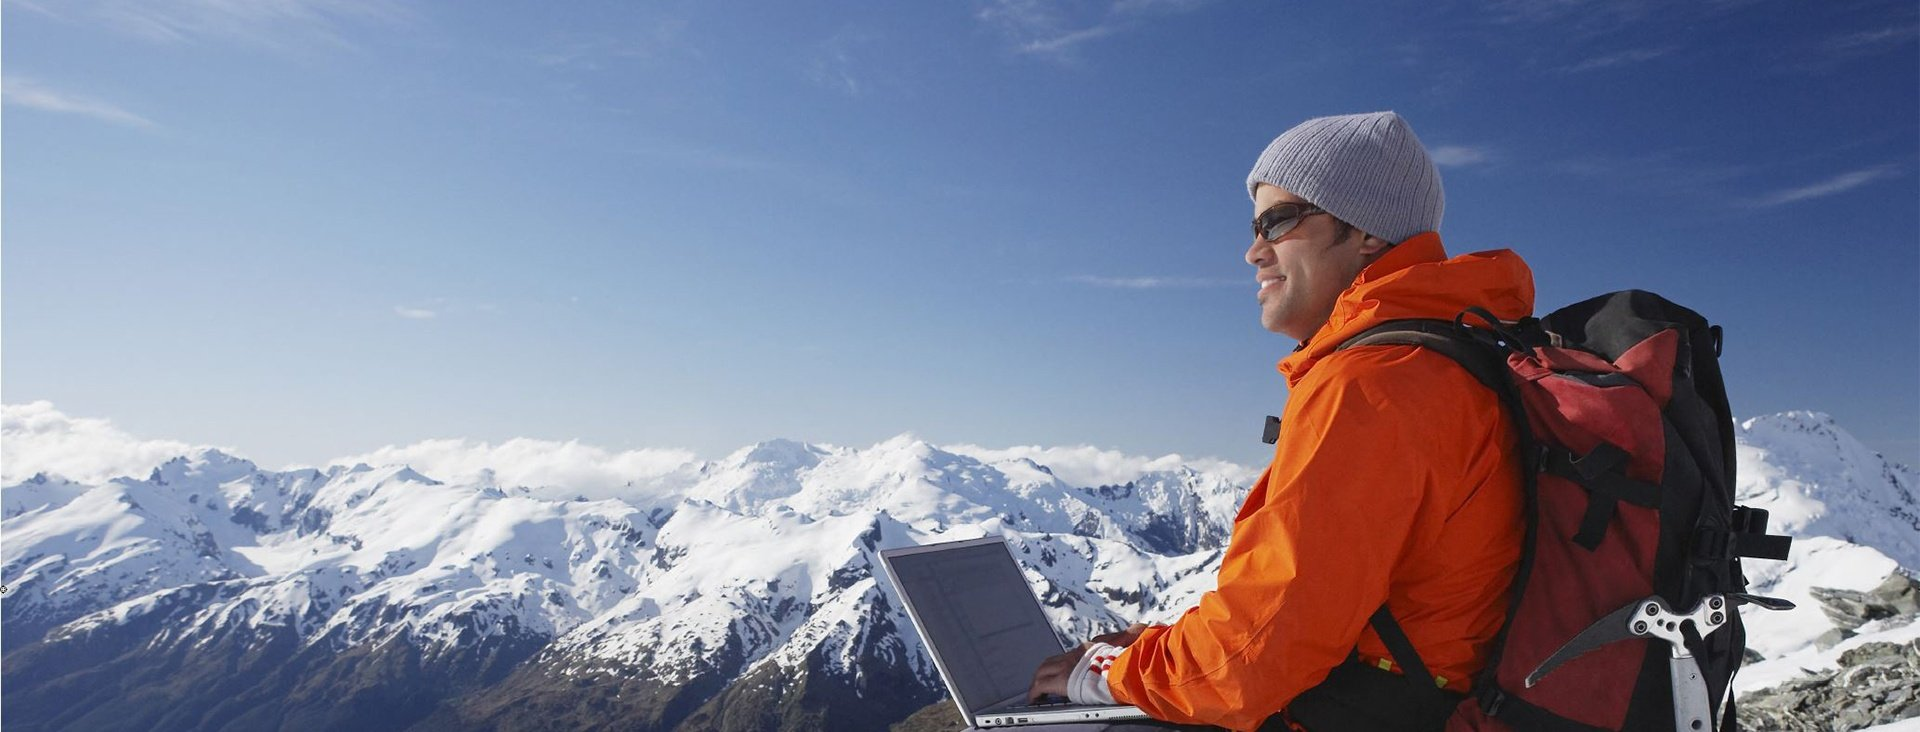 A man with an open laptop sitting with a backdrop of snowy mountain range